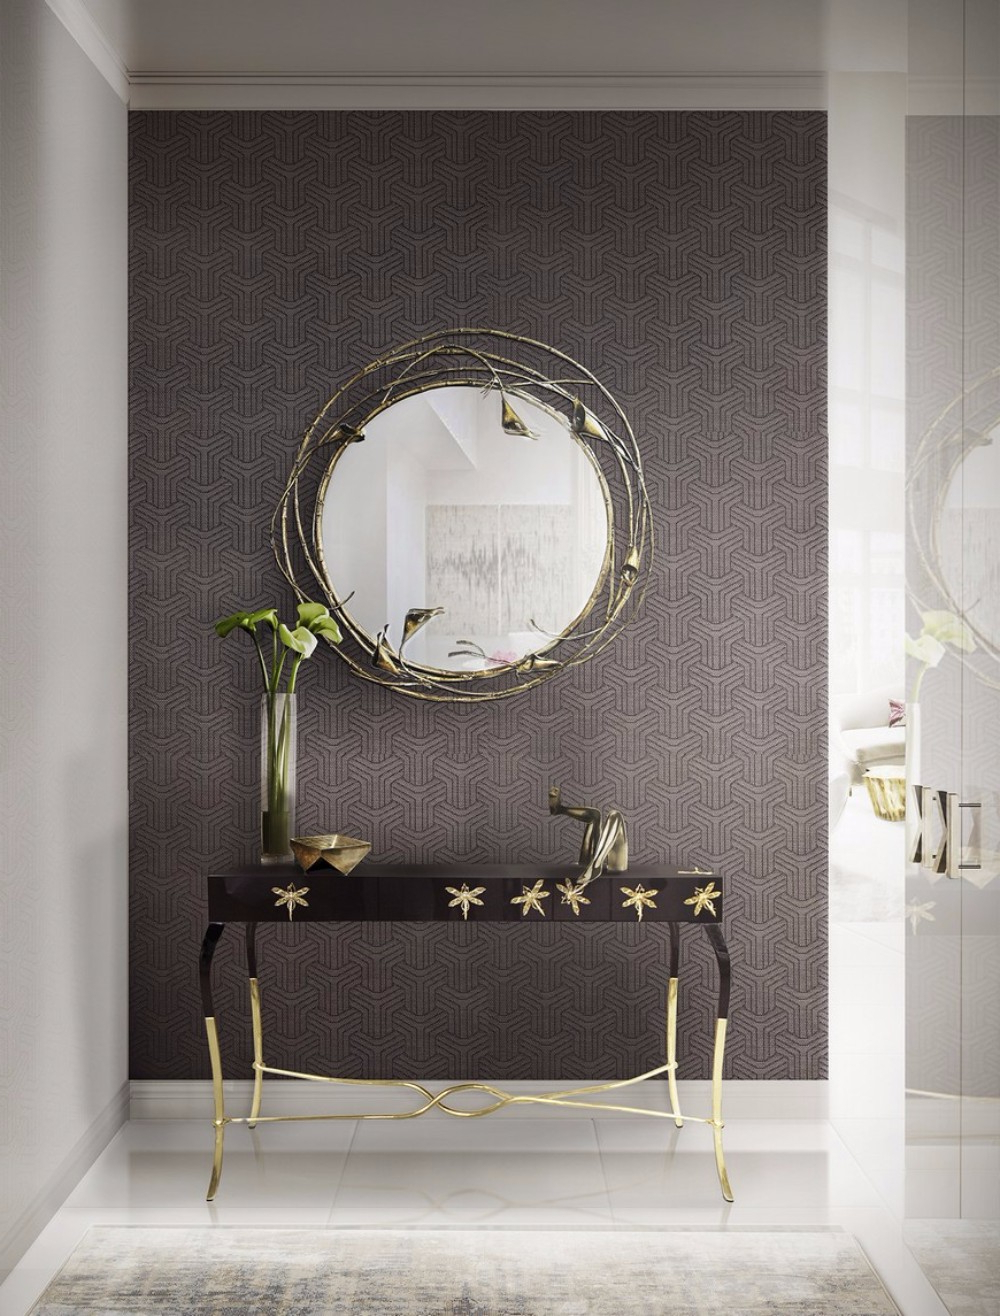 20 Exquisite Wall Mirror Designs For Your Living Room Pertaining To Newest Living Room Wall Mirrors (View 15 of 20)